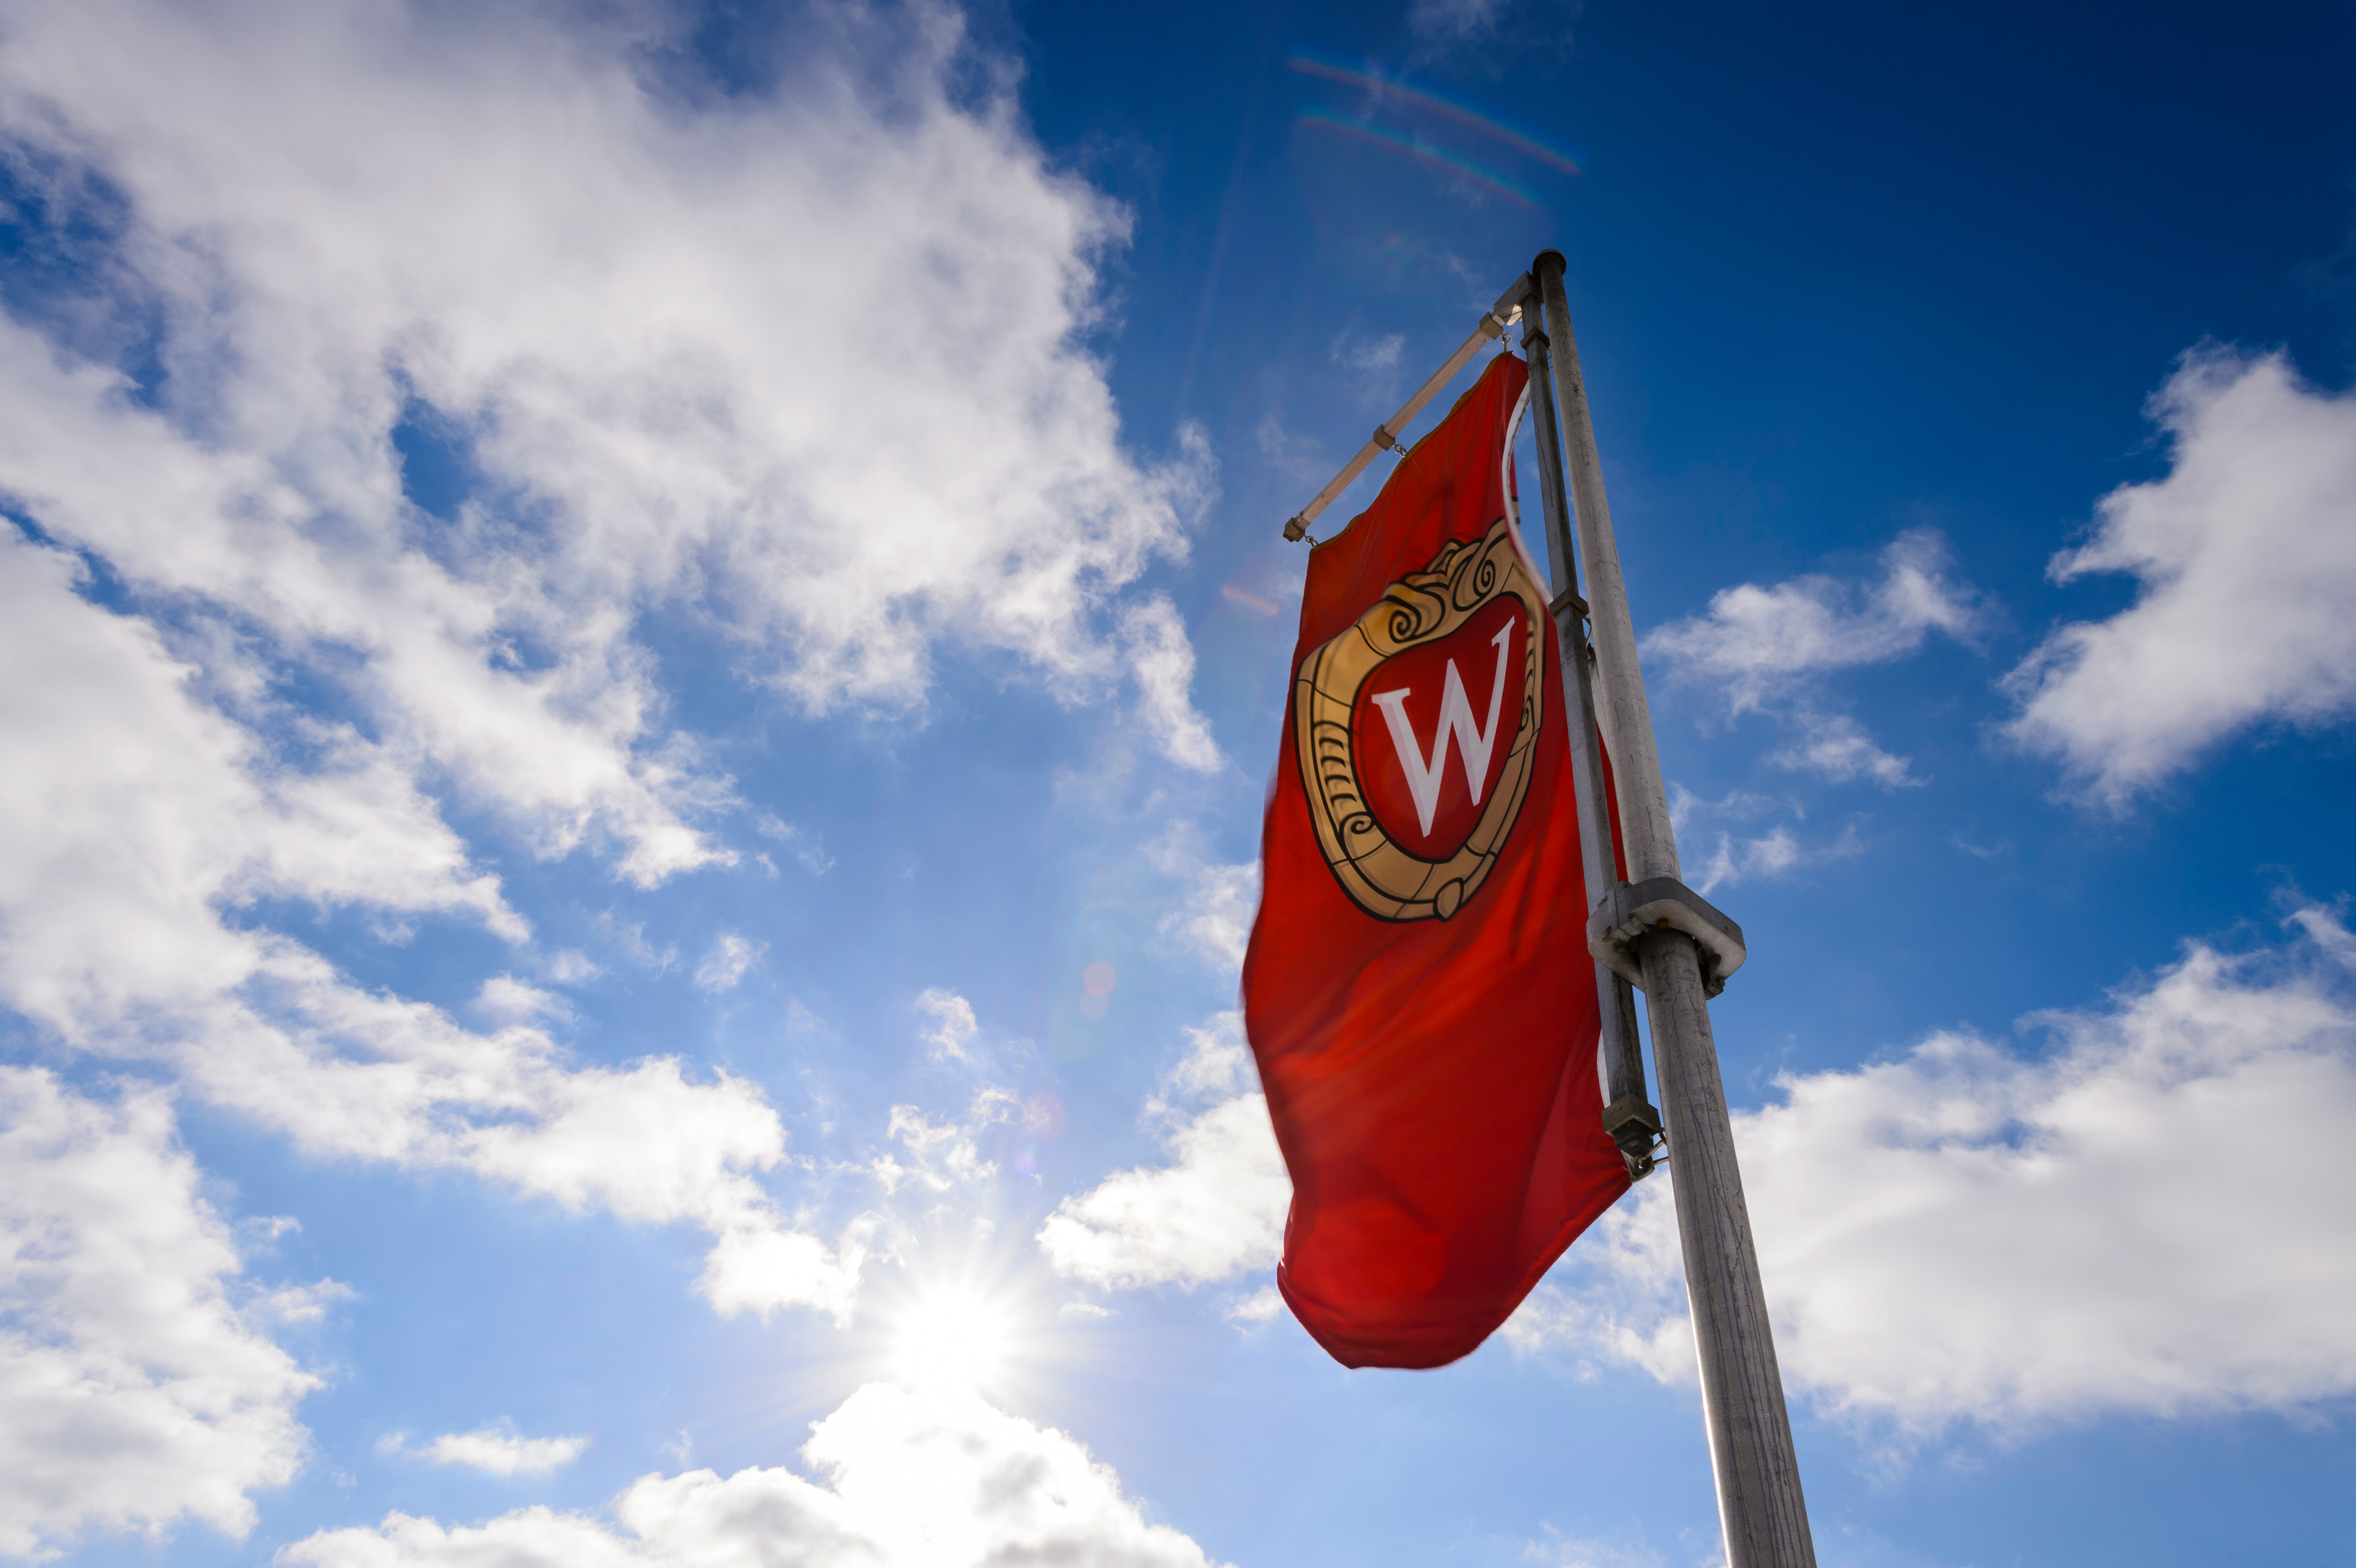 W crest banner against the sky